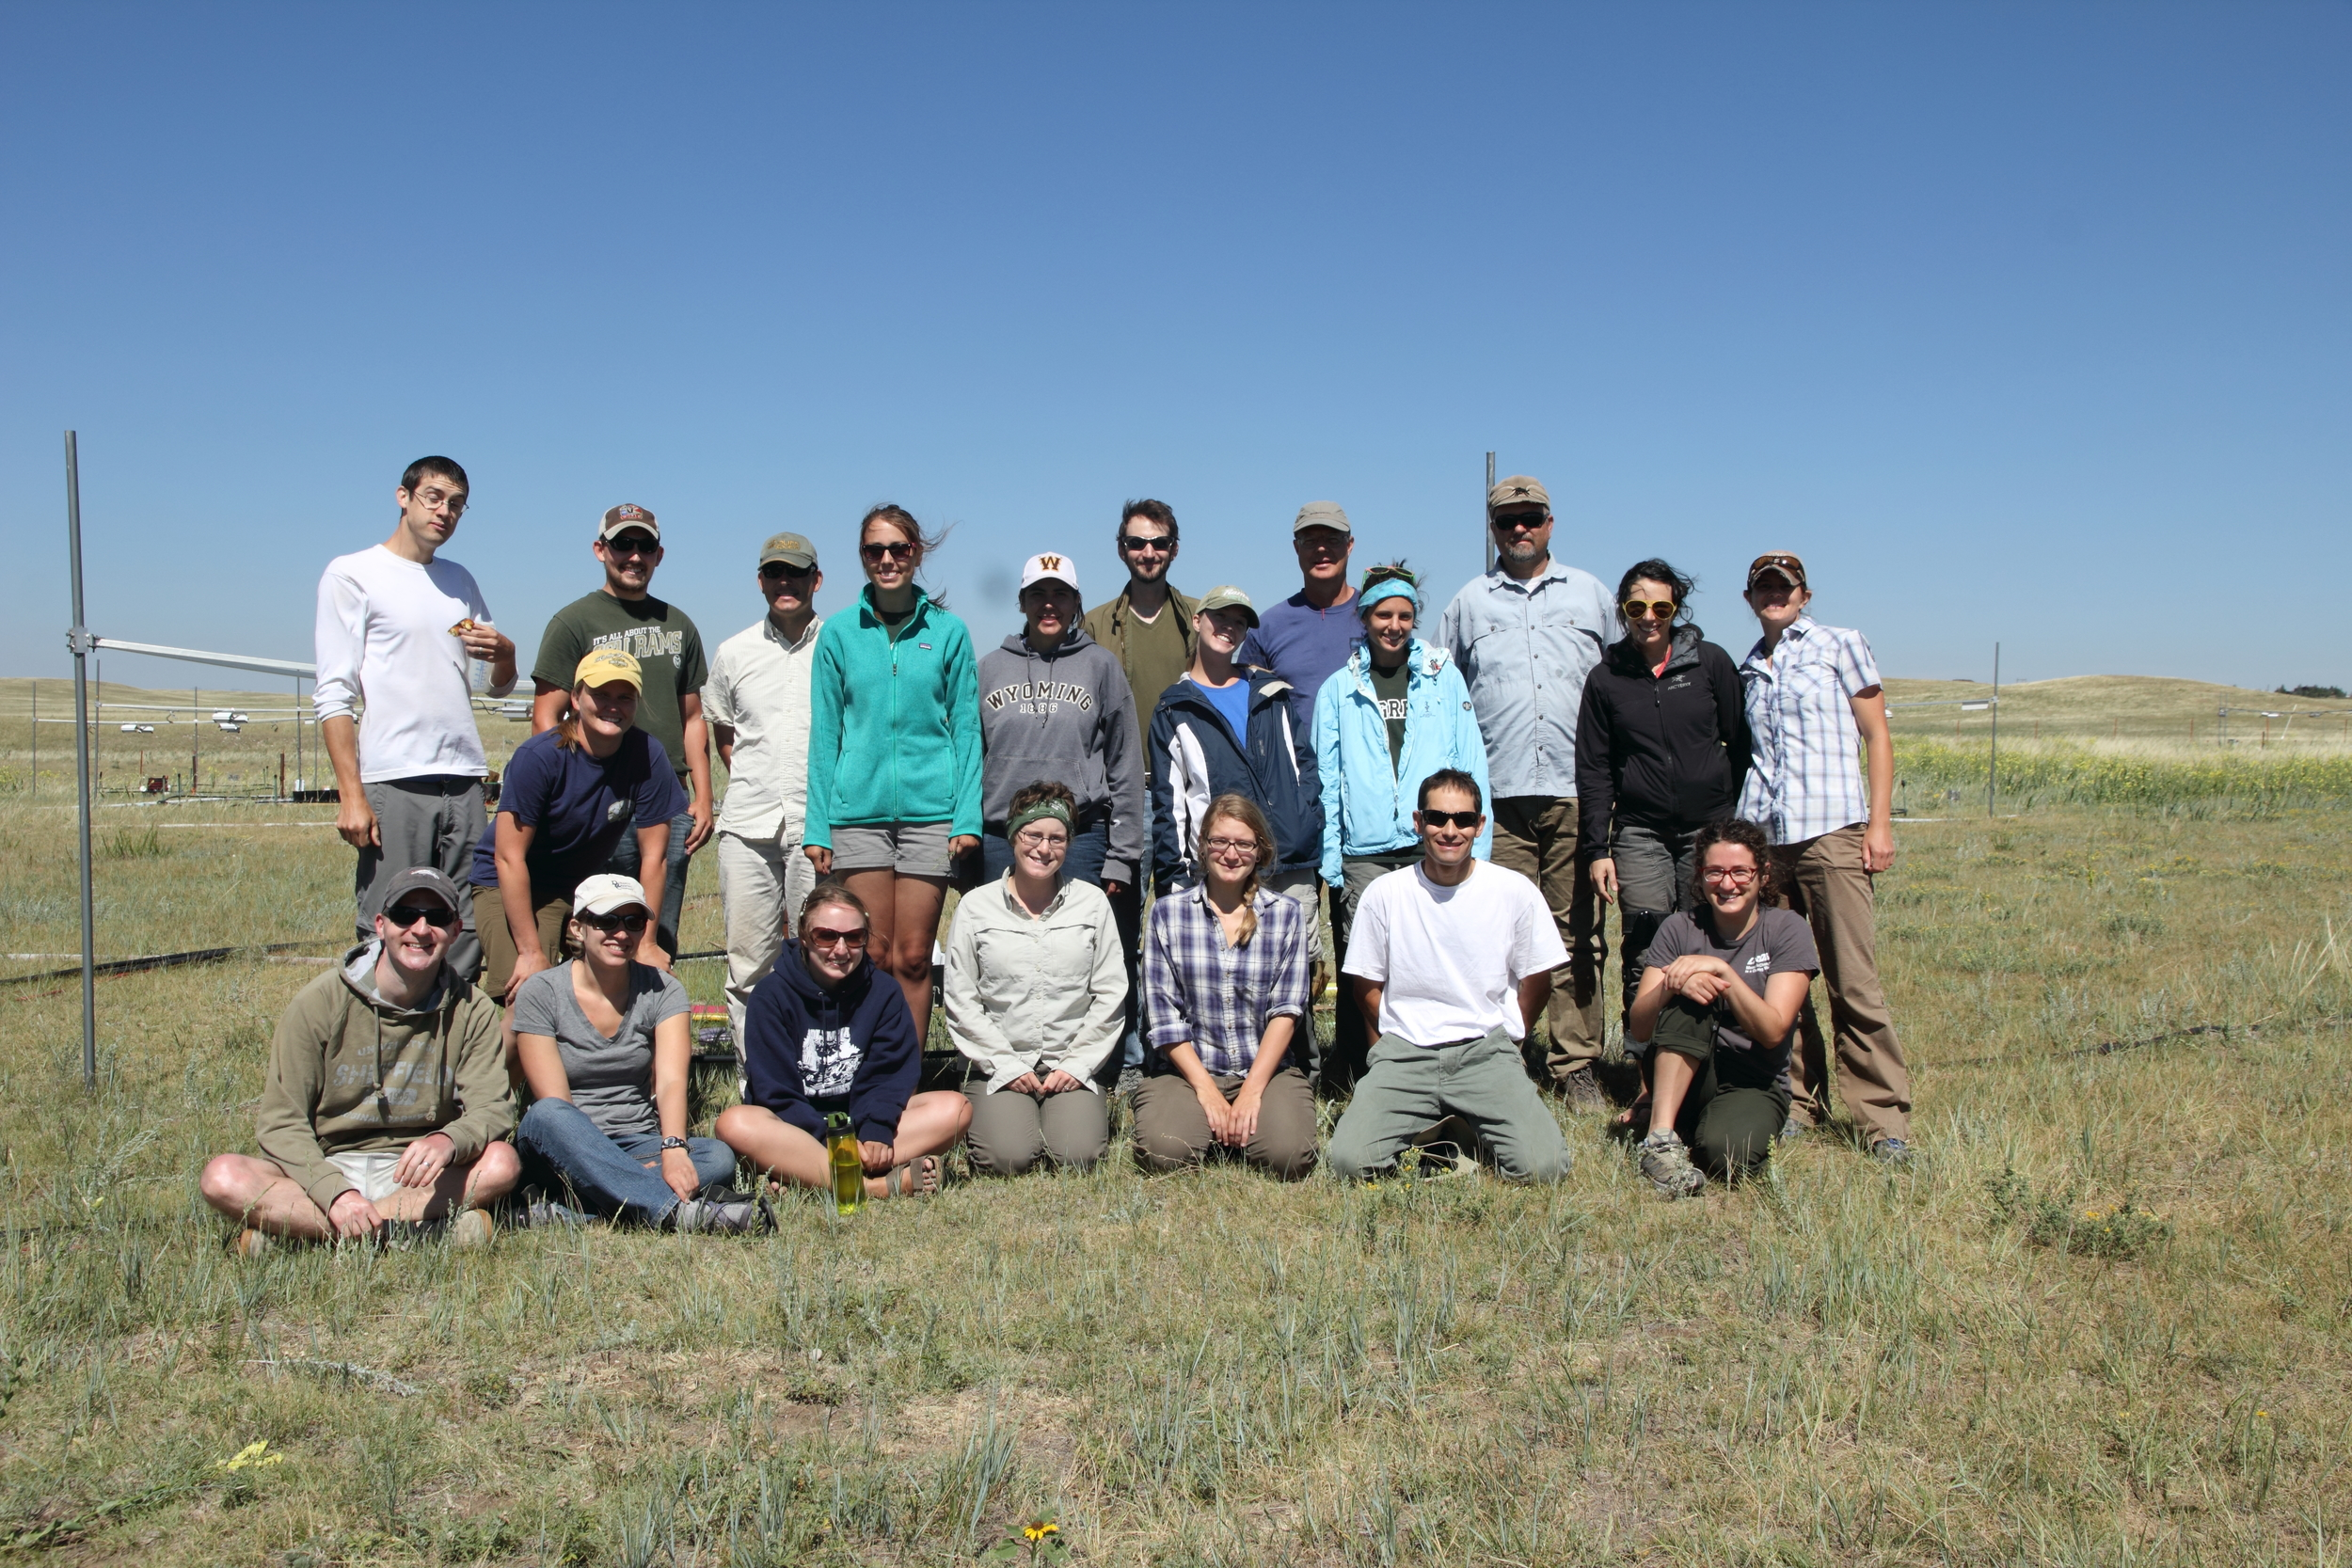 The research group at the PHACE site during the final plant biomass harvest, July 2013